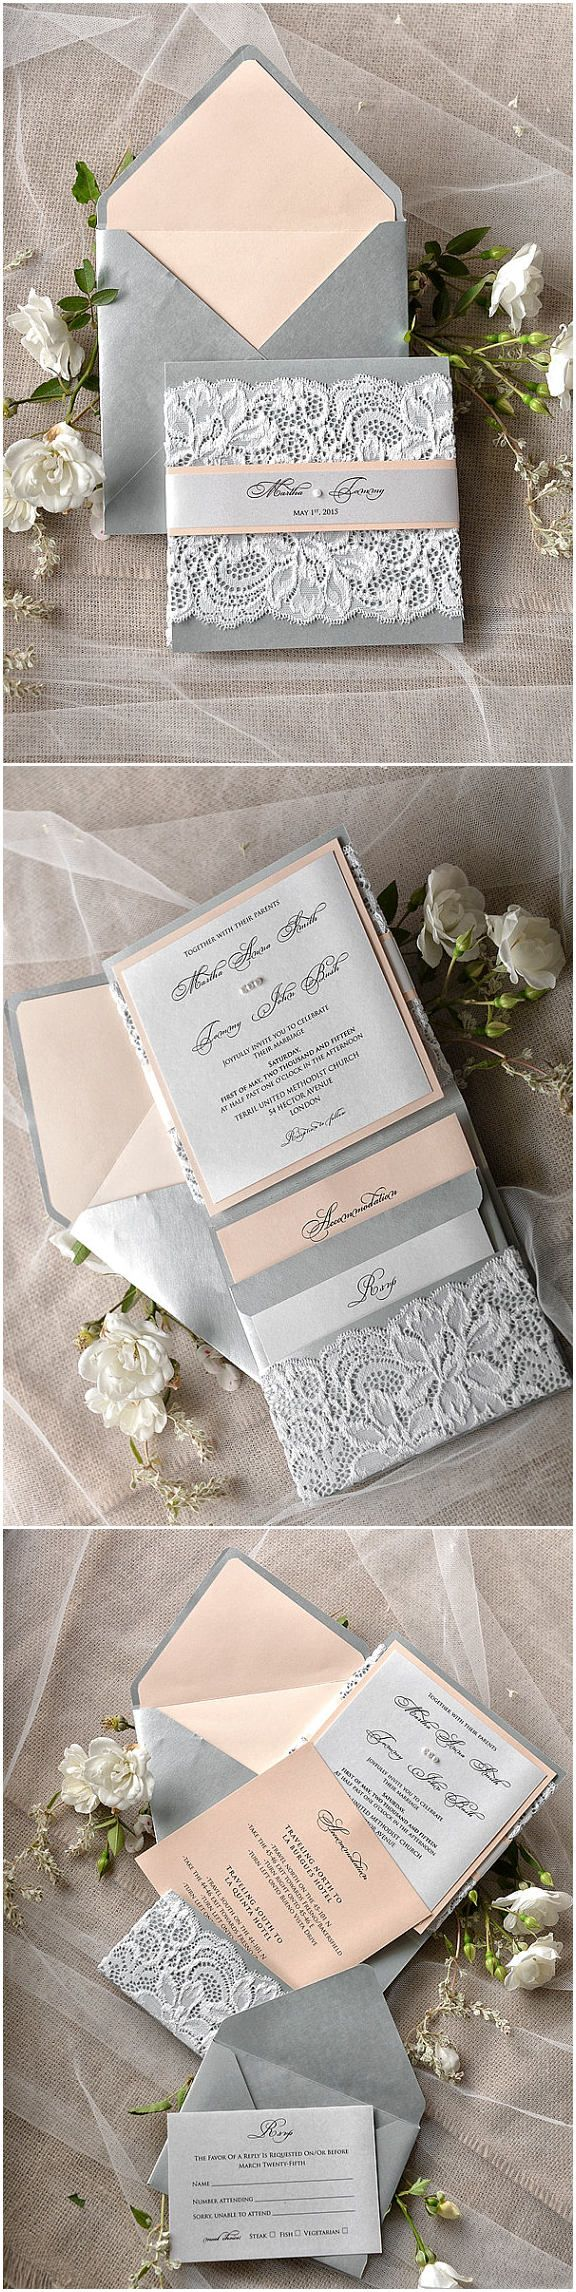 lace wedding invitation wrap%0A Top    Rustic Wedding Invitations to WOW Your Guests